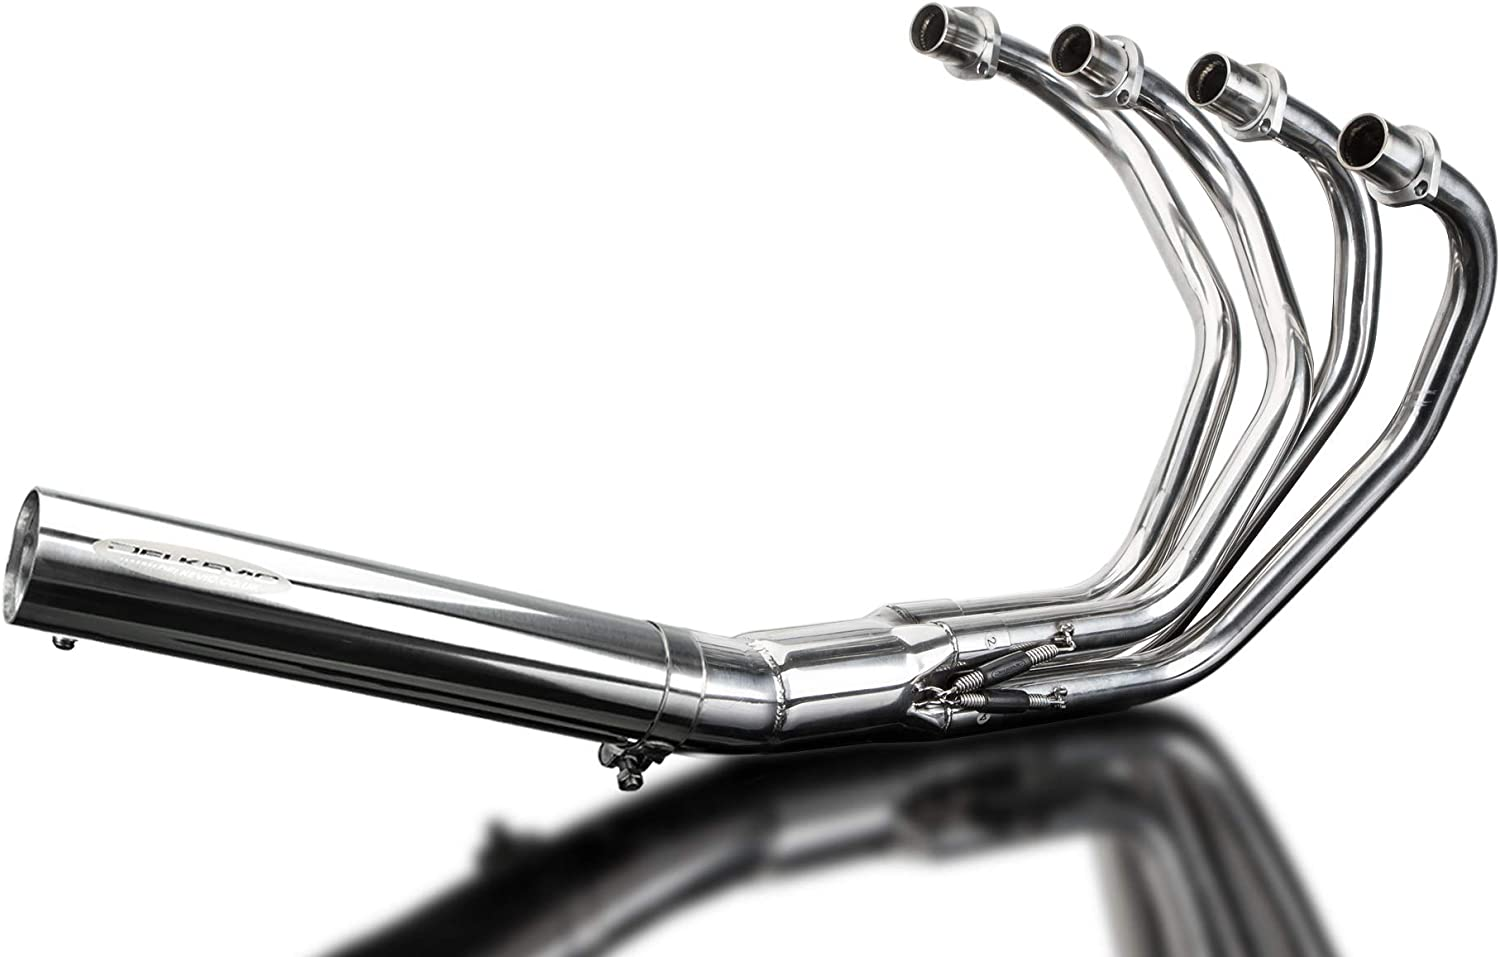 with Classic Straight Universal Muffler and Stainless Steel 4-1 Headers 1972-1974 Delkevic Aftermarket Complete System compatible with Honda CB350F CB350 FOUR